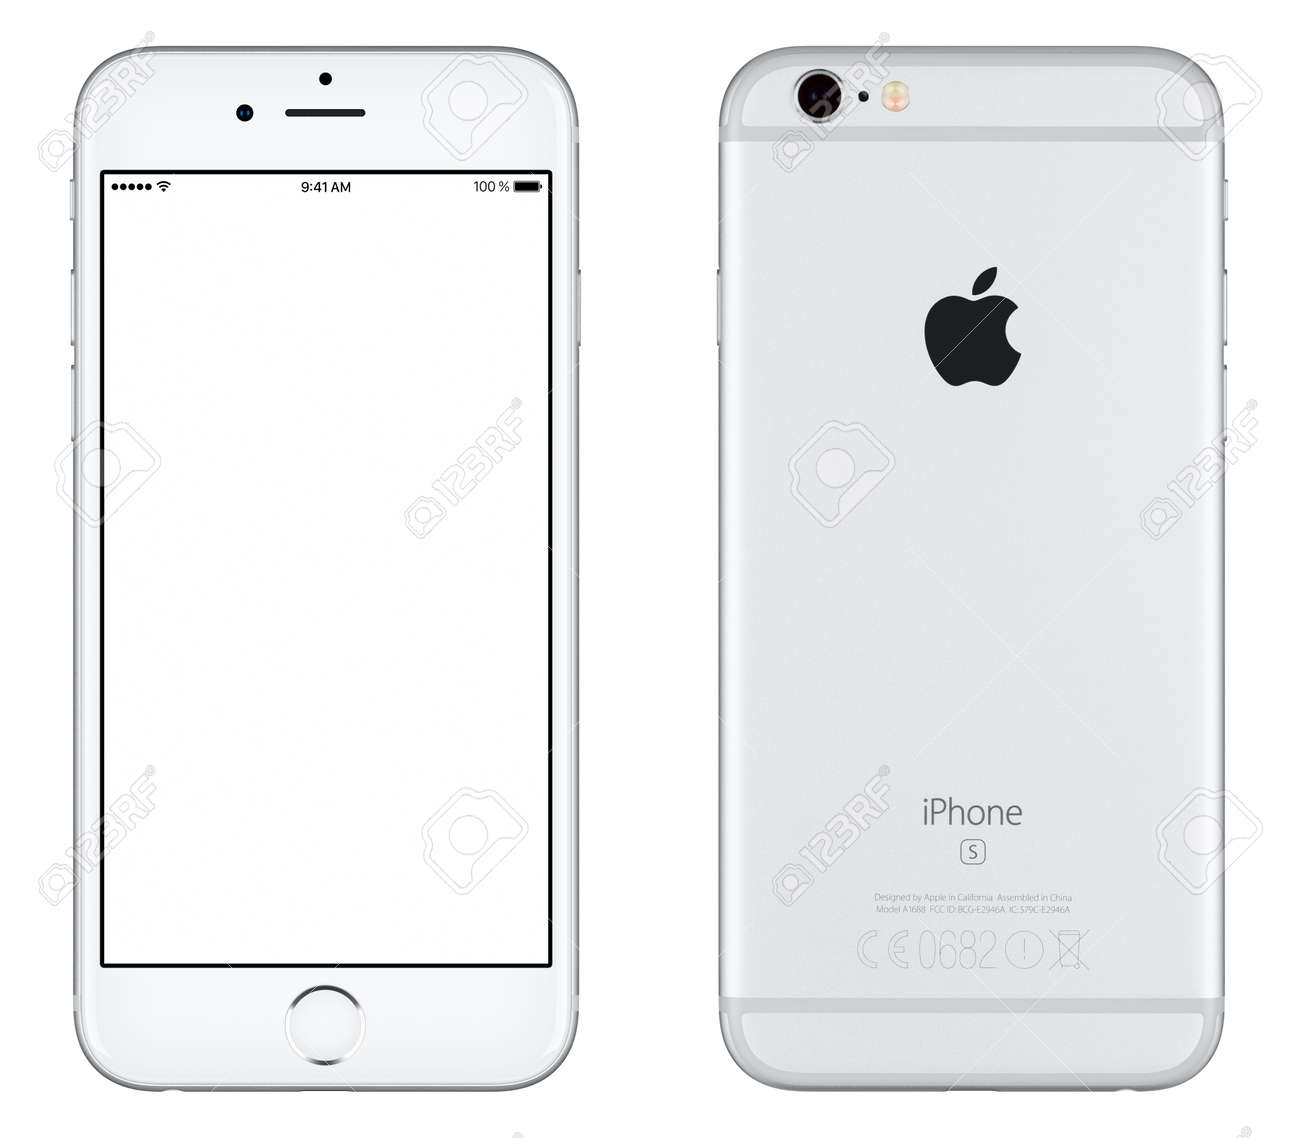 Varna, Bulgaria - October 24, 2015: Front view of Silver Apple iPhone 6S mockup with white screen and back side with Apple Inc logo. Isolated on white. - 51147174